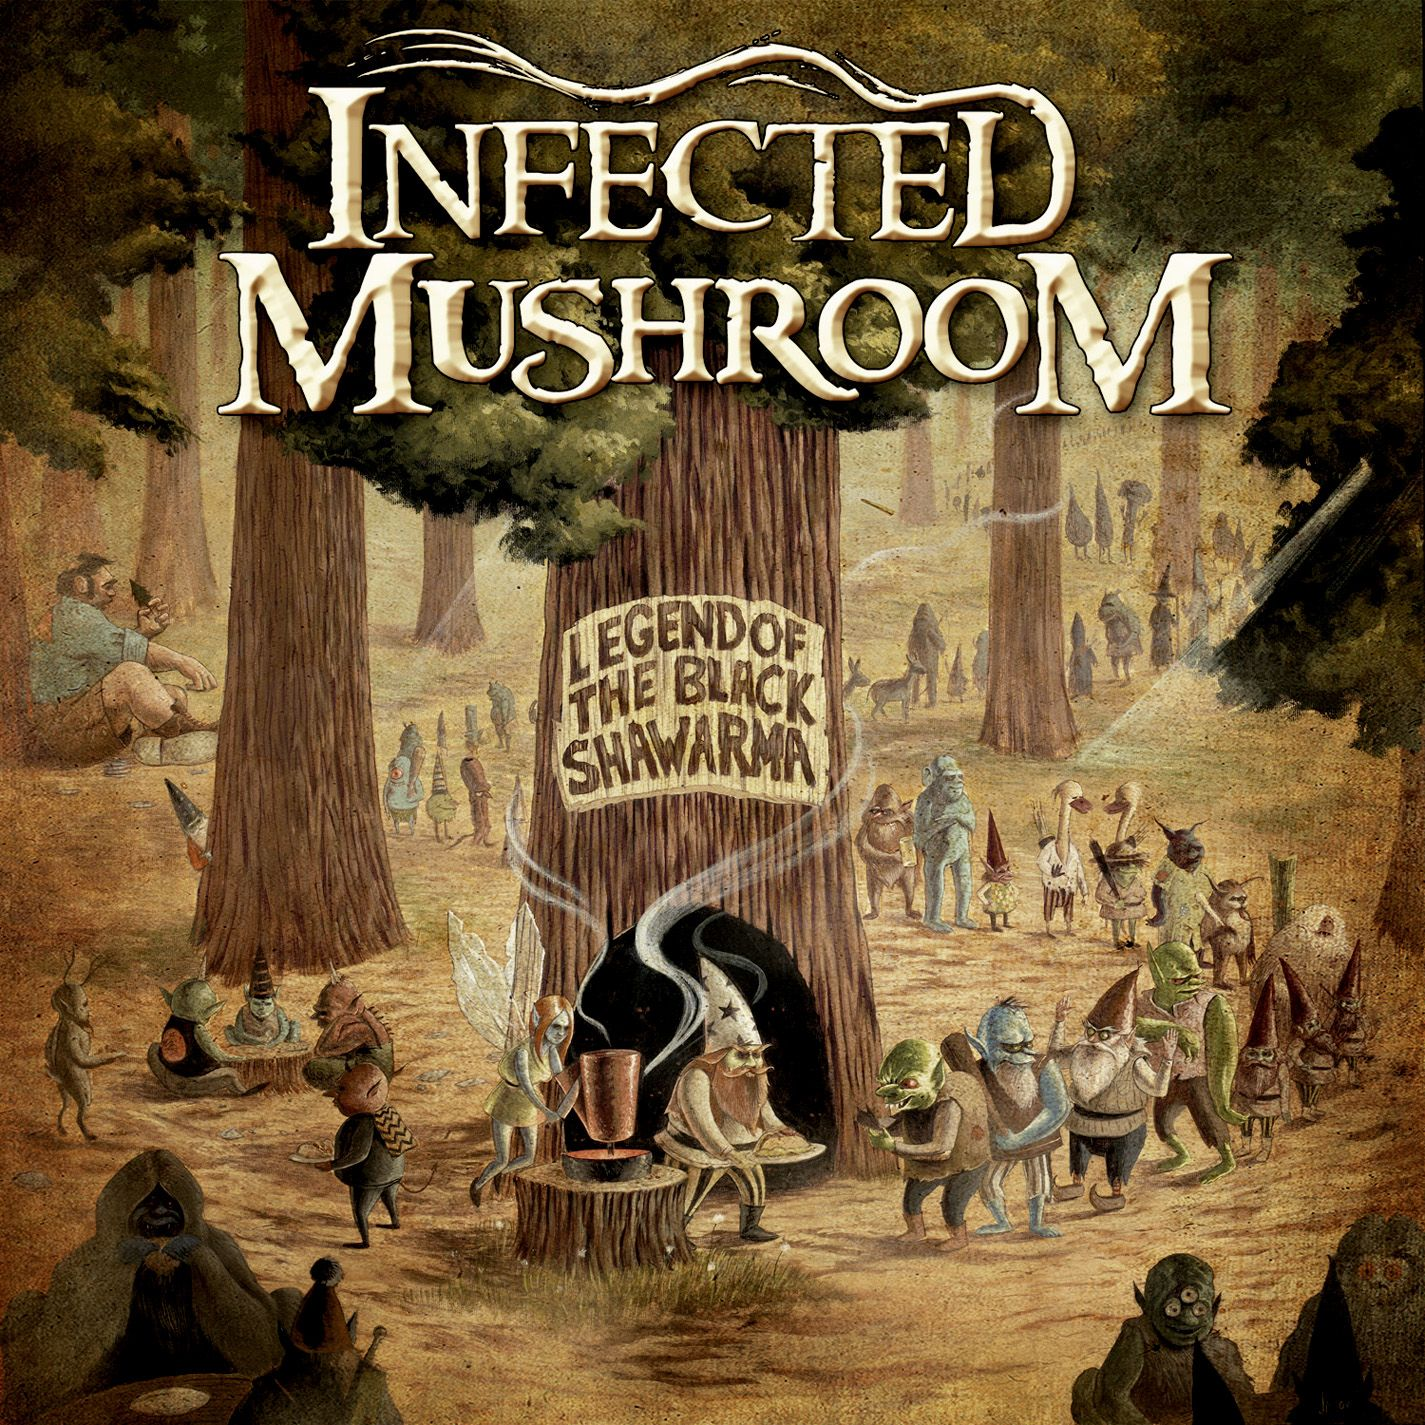 Infected Mushroom Songs Awesome infected mushroom - legend of the black shawarma | music